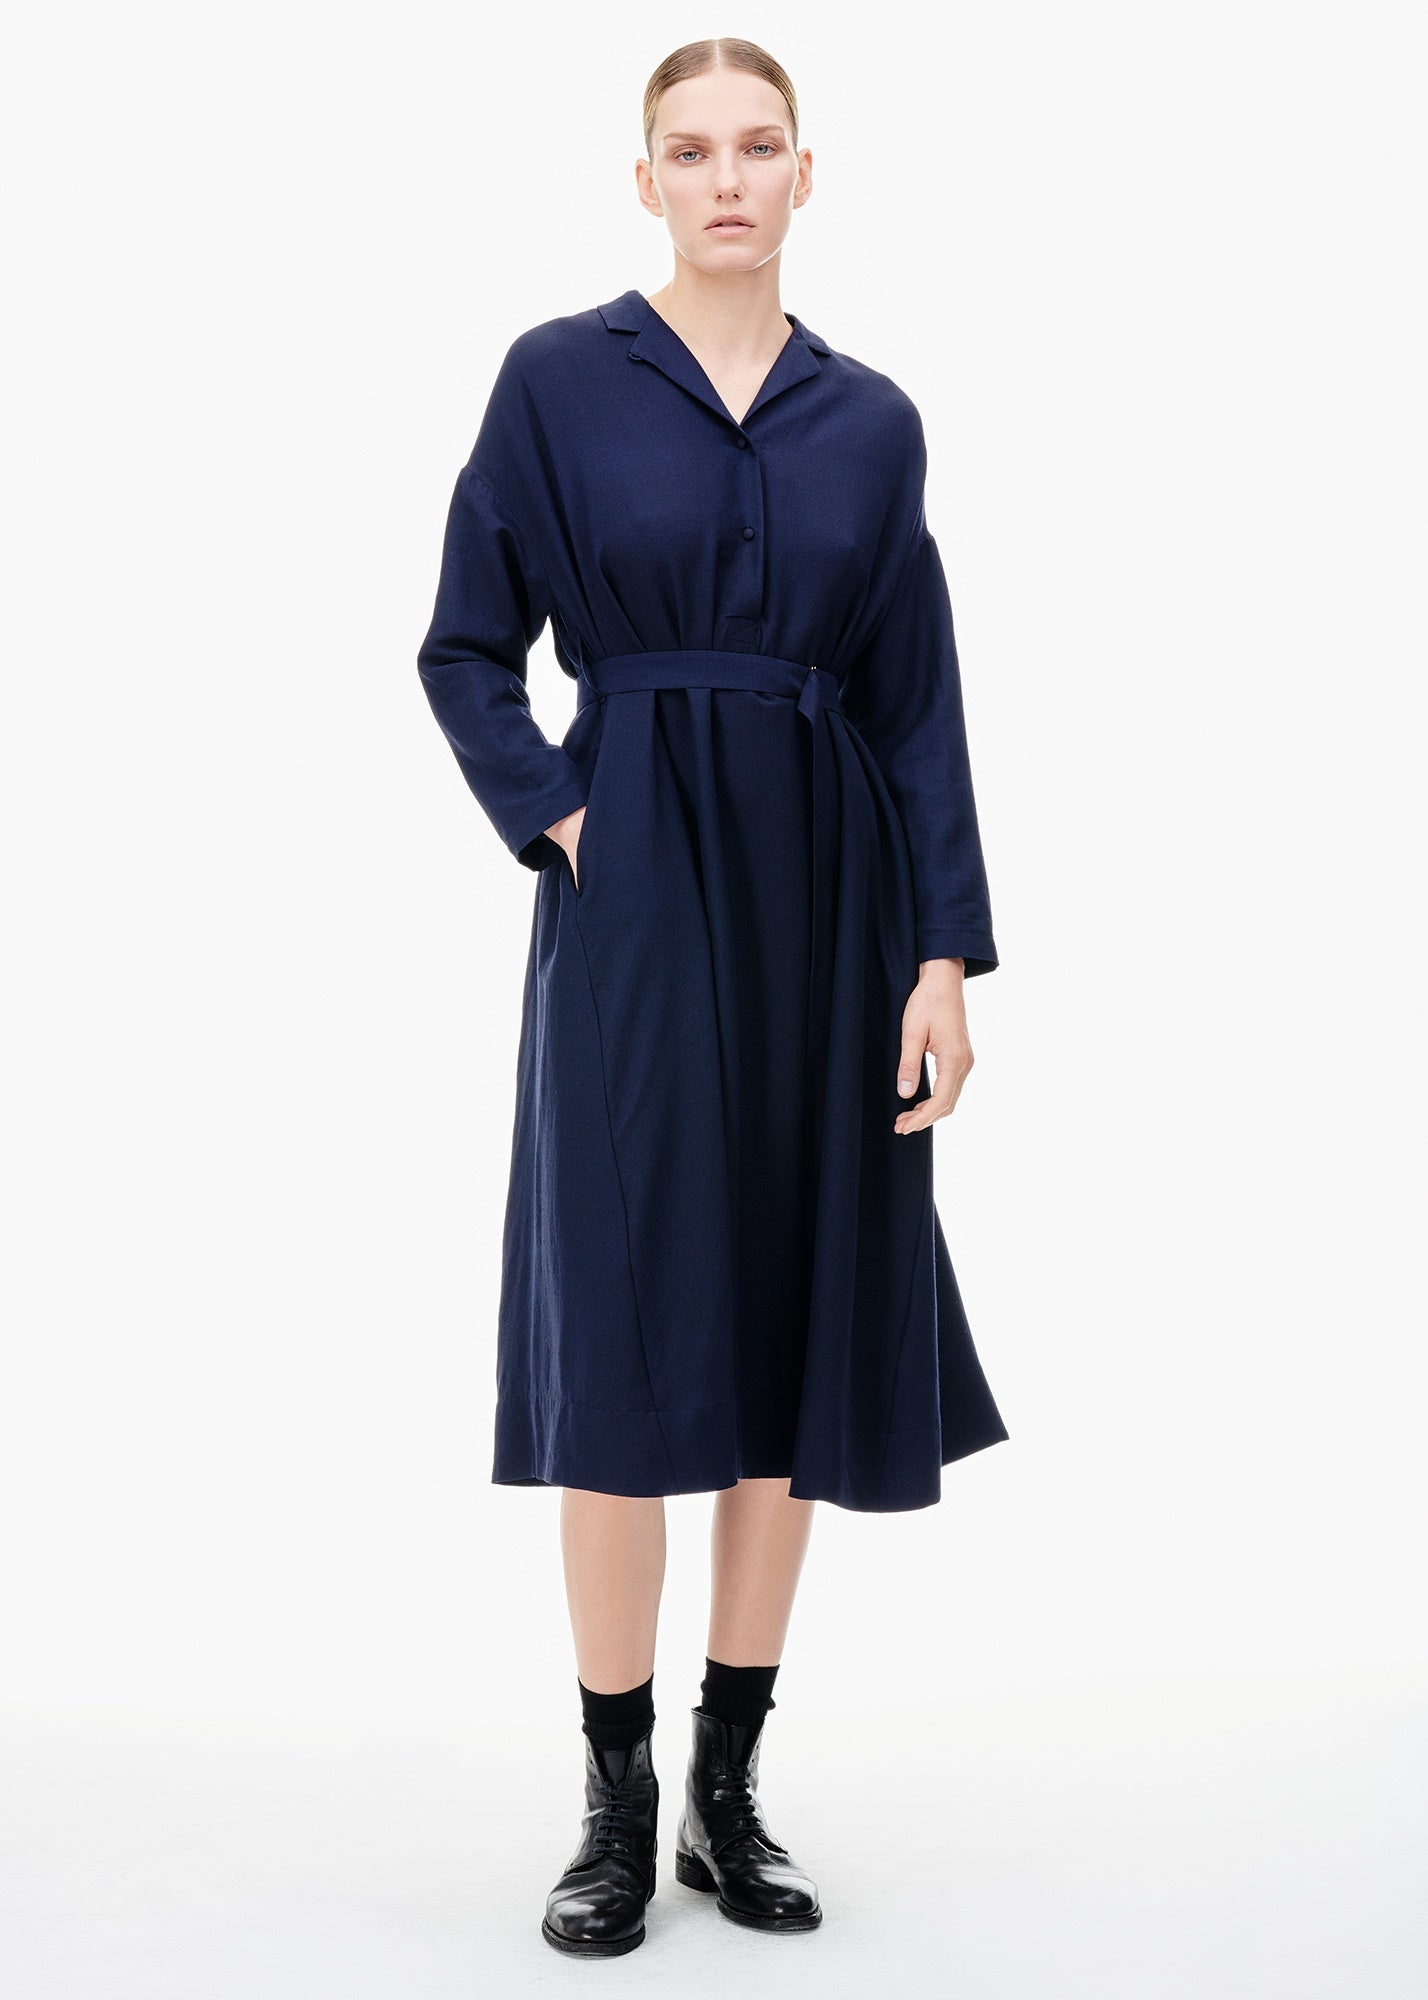 Daisy Dress Navy